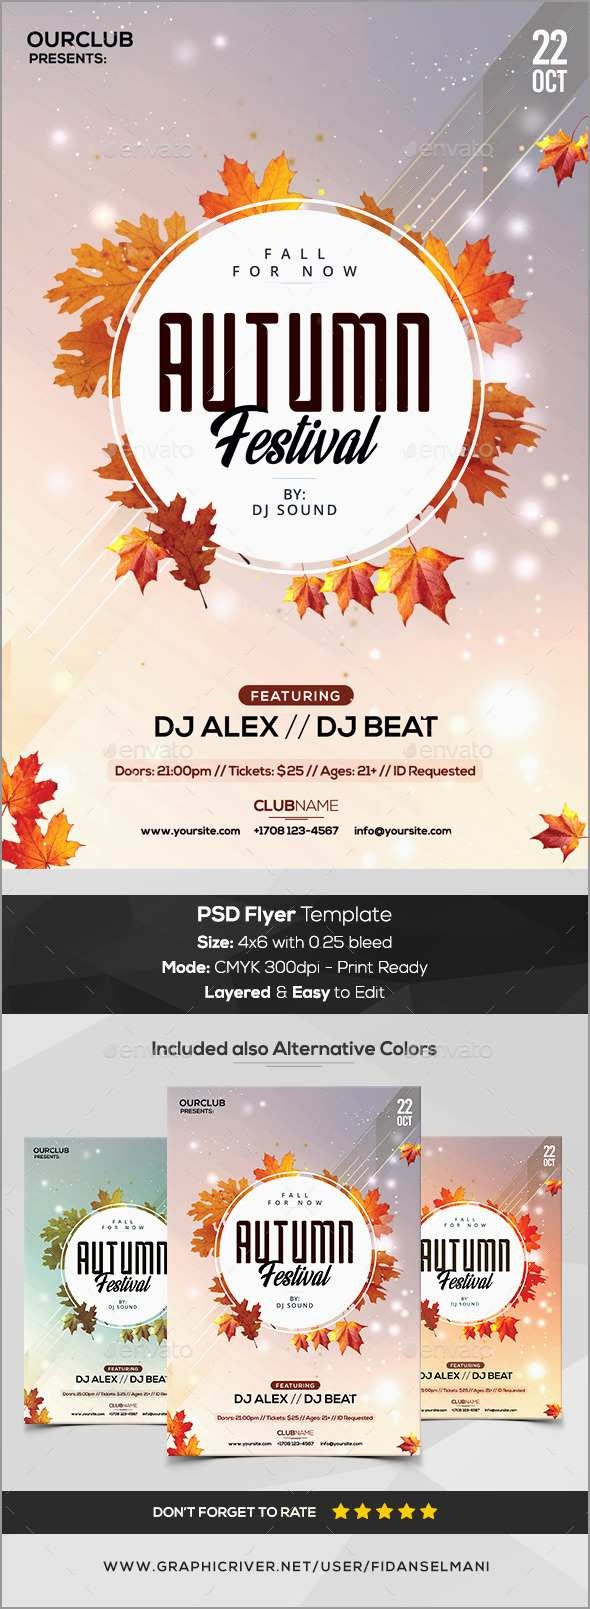 Unique Free Printable Fall Flyer Templates | Best Of Template - Free Printable Fall Flyer Templates